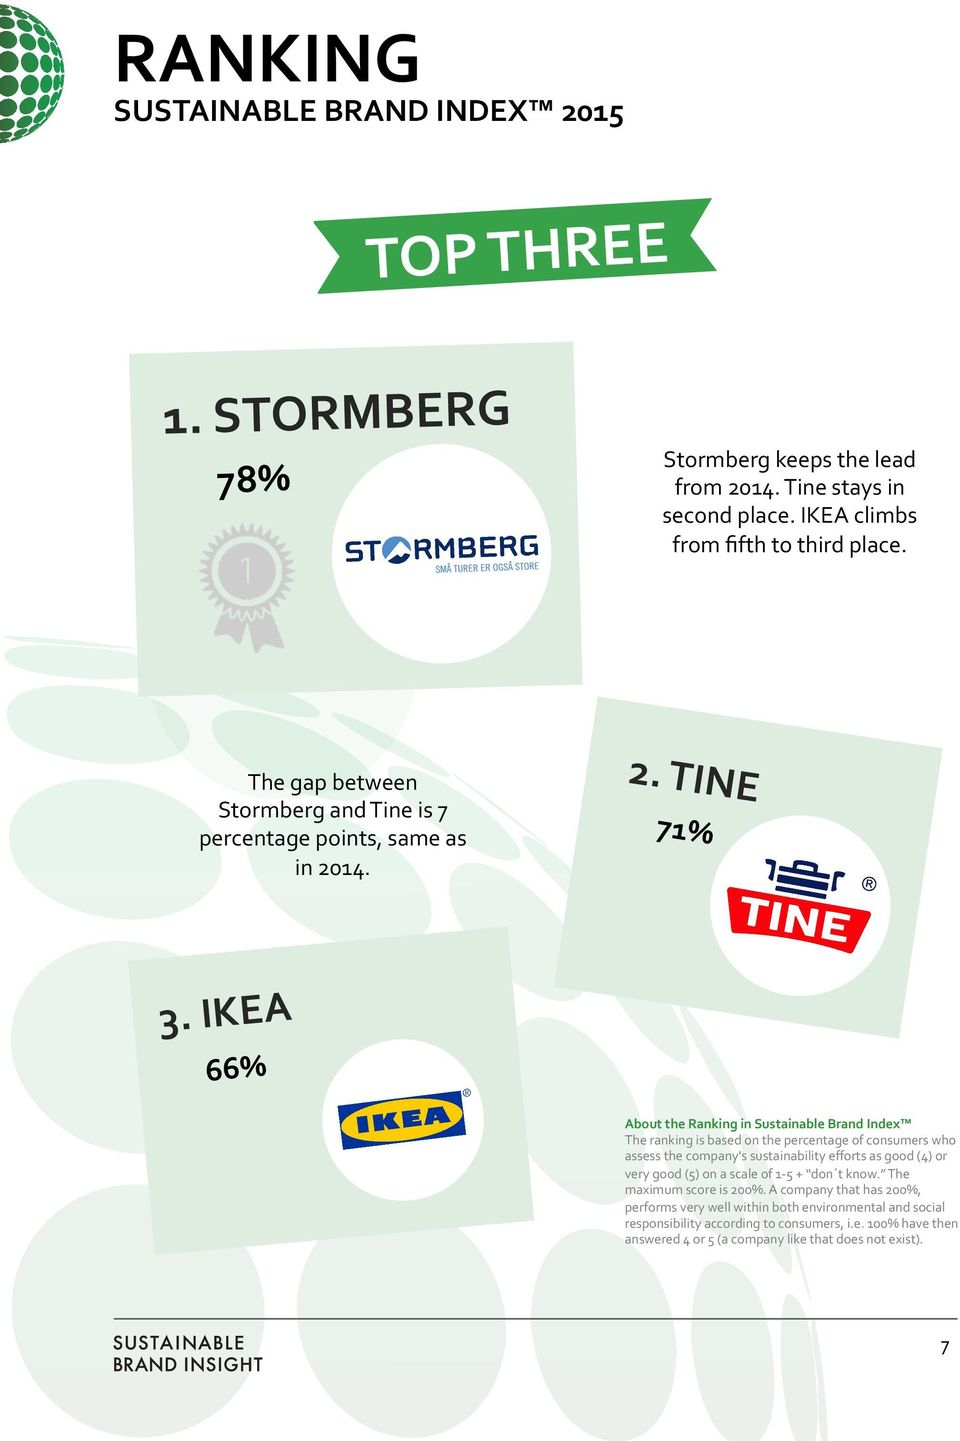 IKEA 66% About the Ranking in Sustainable Brand Index The ranking is based on the percentage of consumers who assess the company's sustainability efforts as good (4) or very